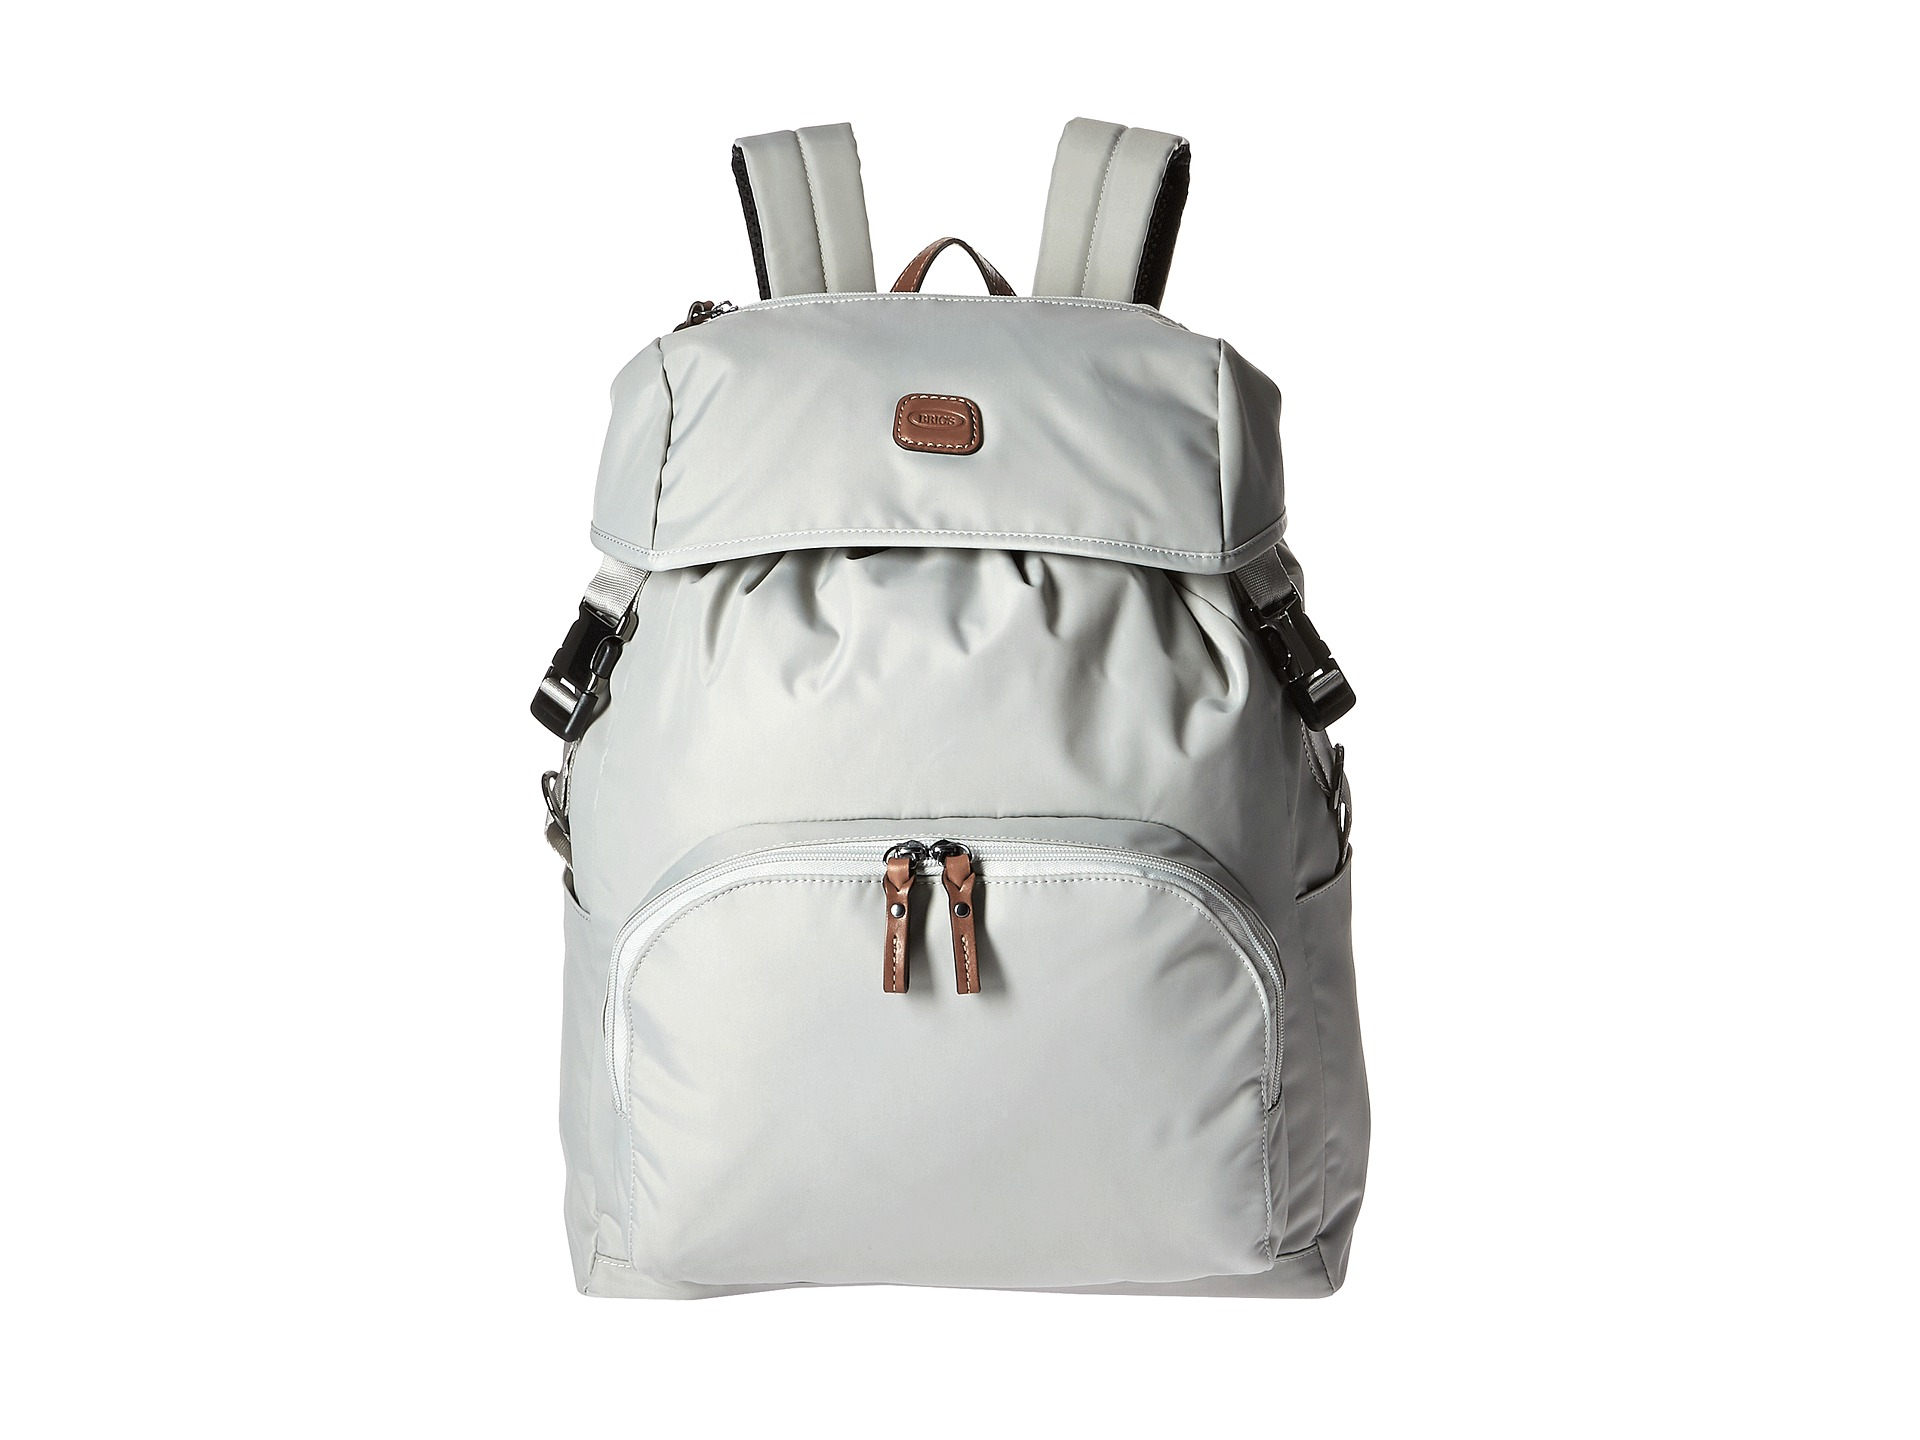 af79be9eeff Bric's X-bag Large Backpack in Gray - Lyst